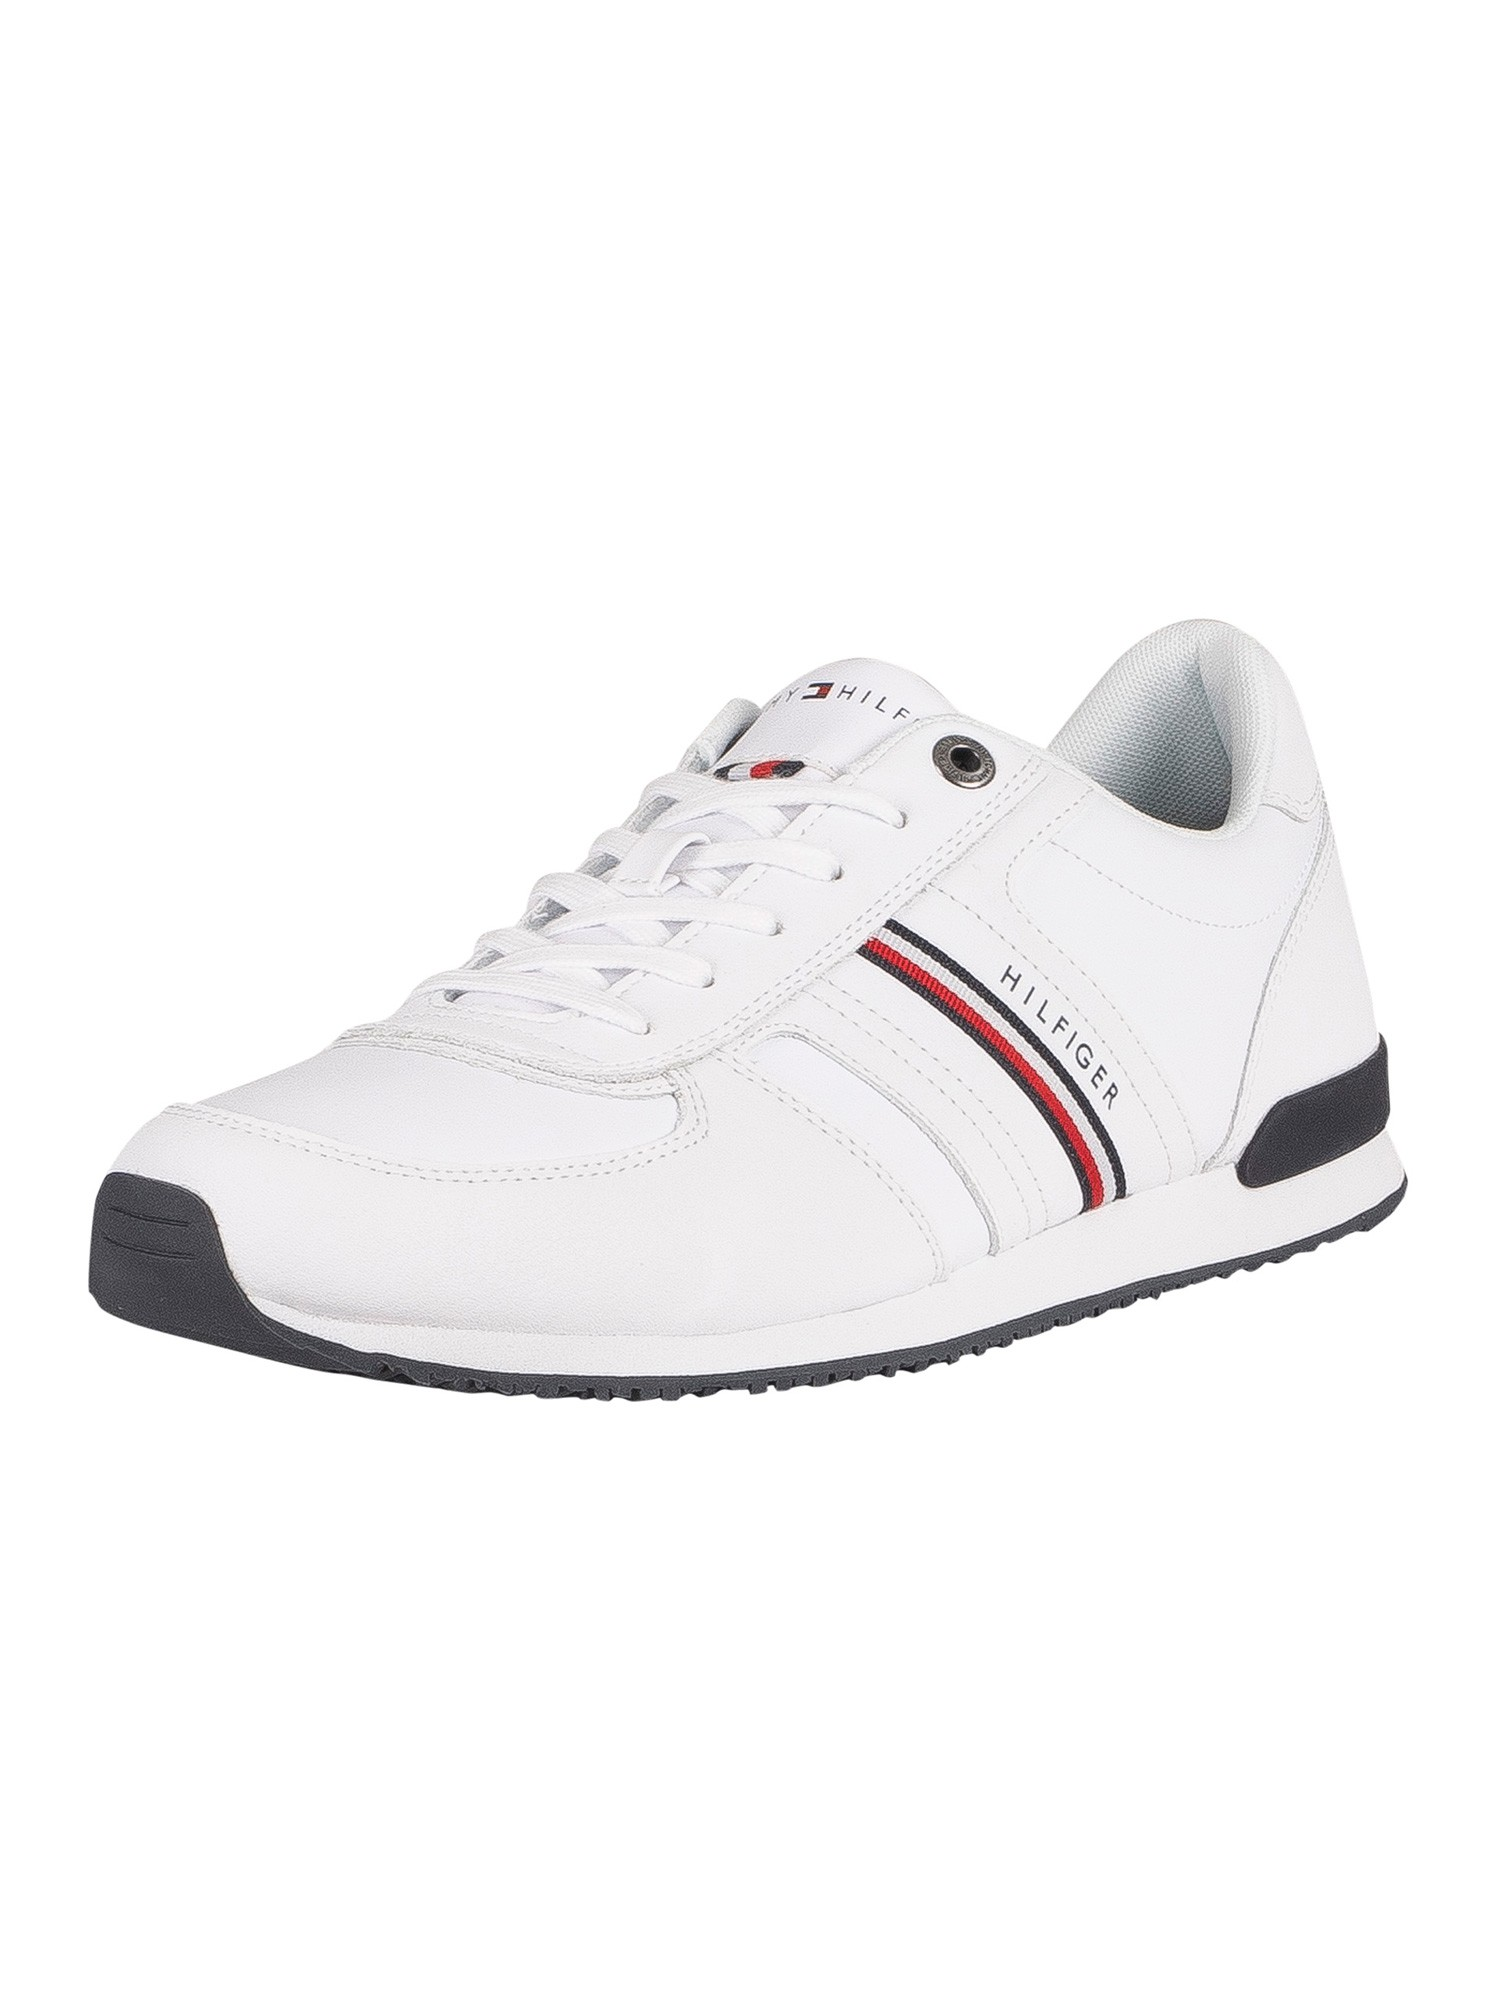 Iconic Leather Runner Trainers